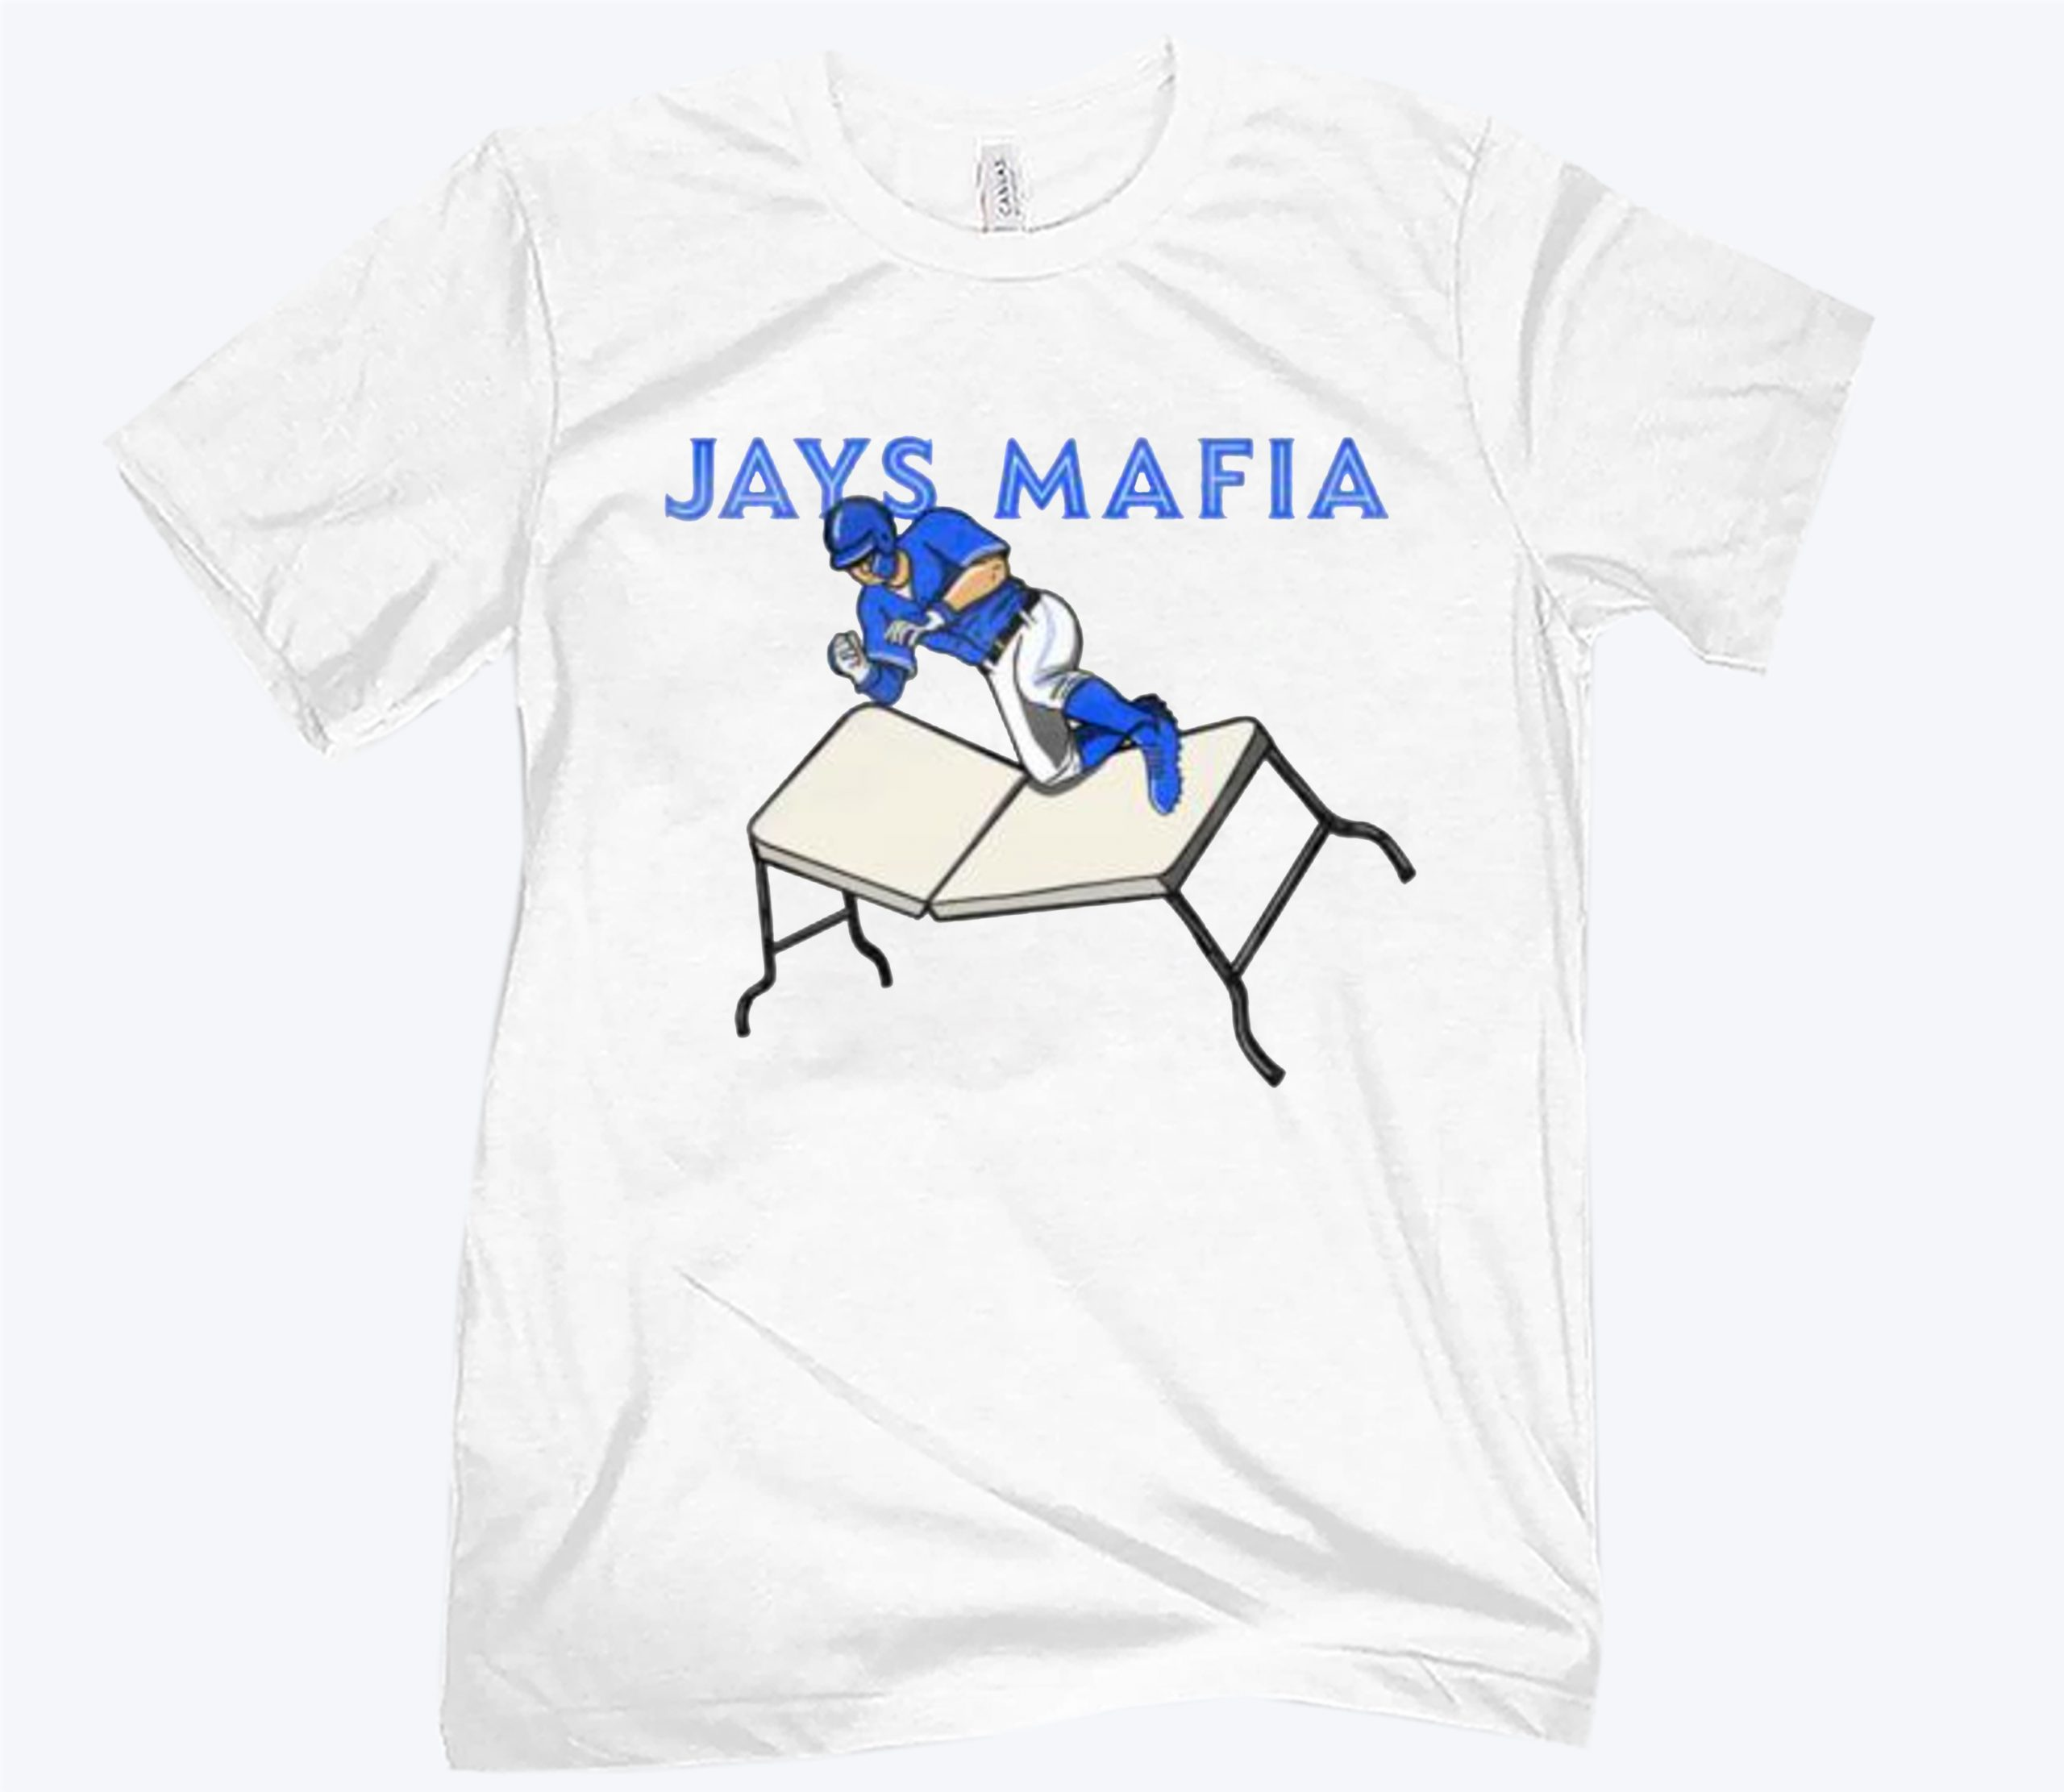 JAYS MAFIA TABLE TEE SHIRT